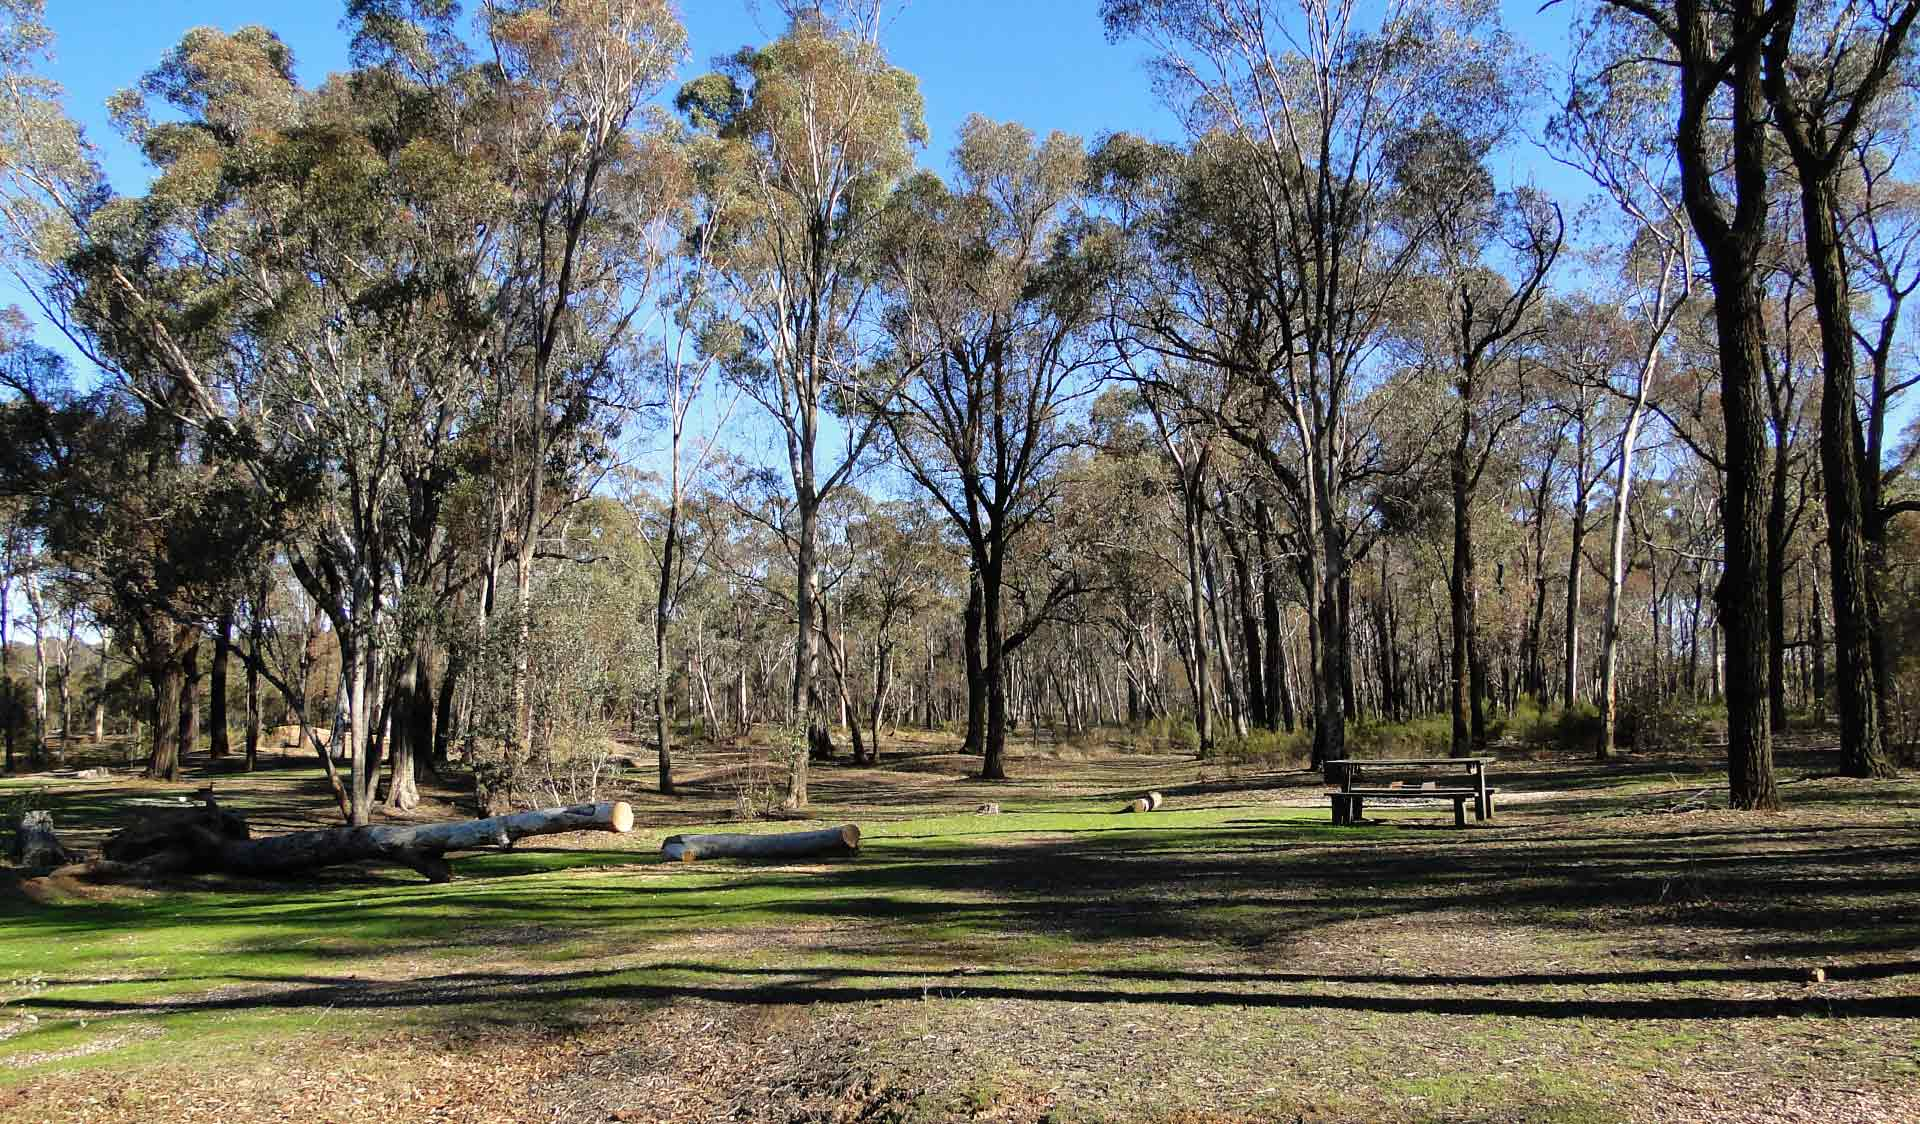 Notley Picnic Ground in the Greater Bendigo National Park